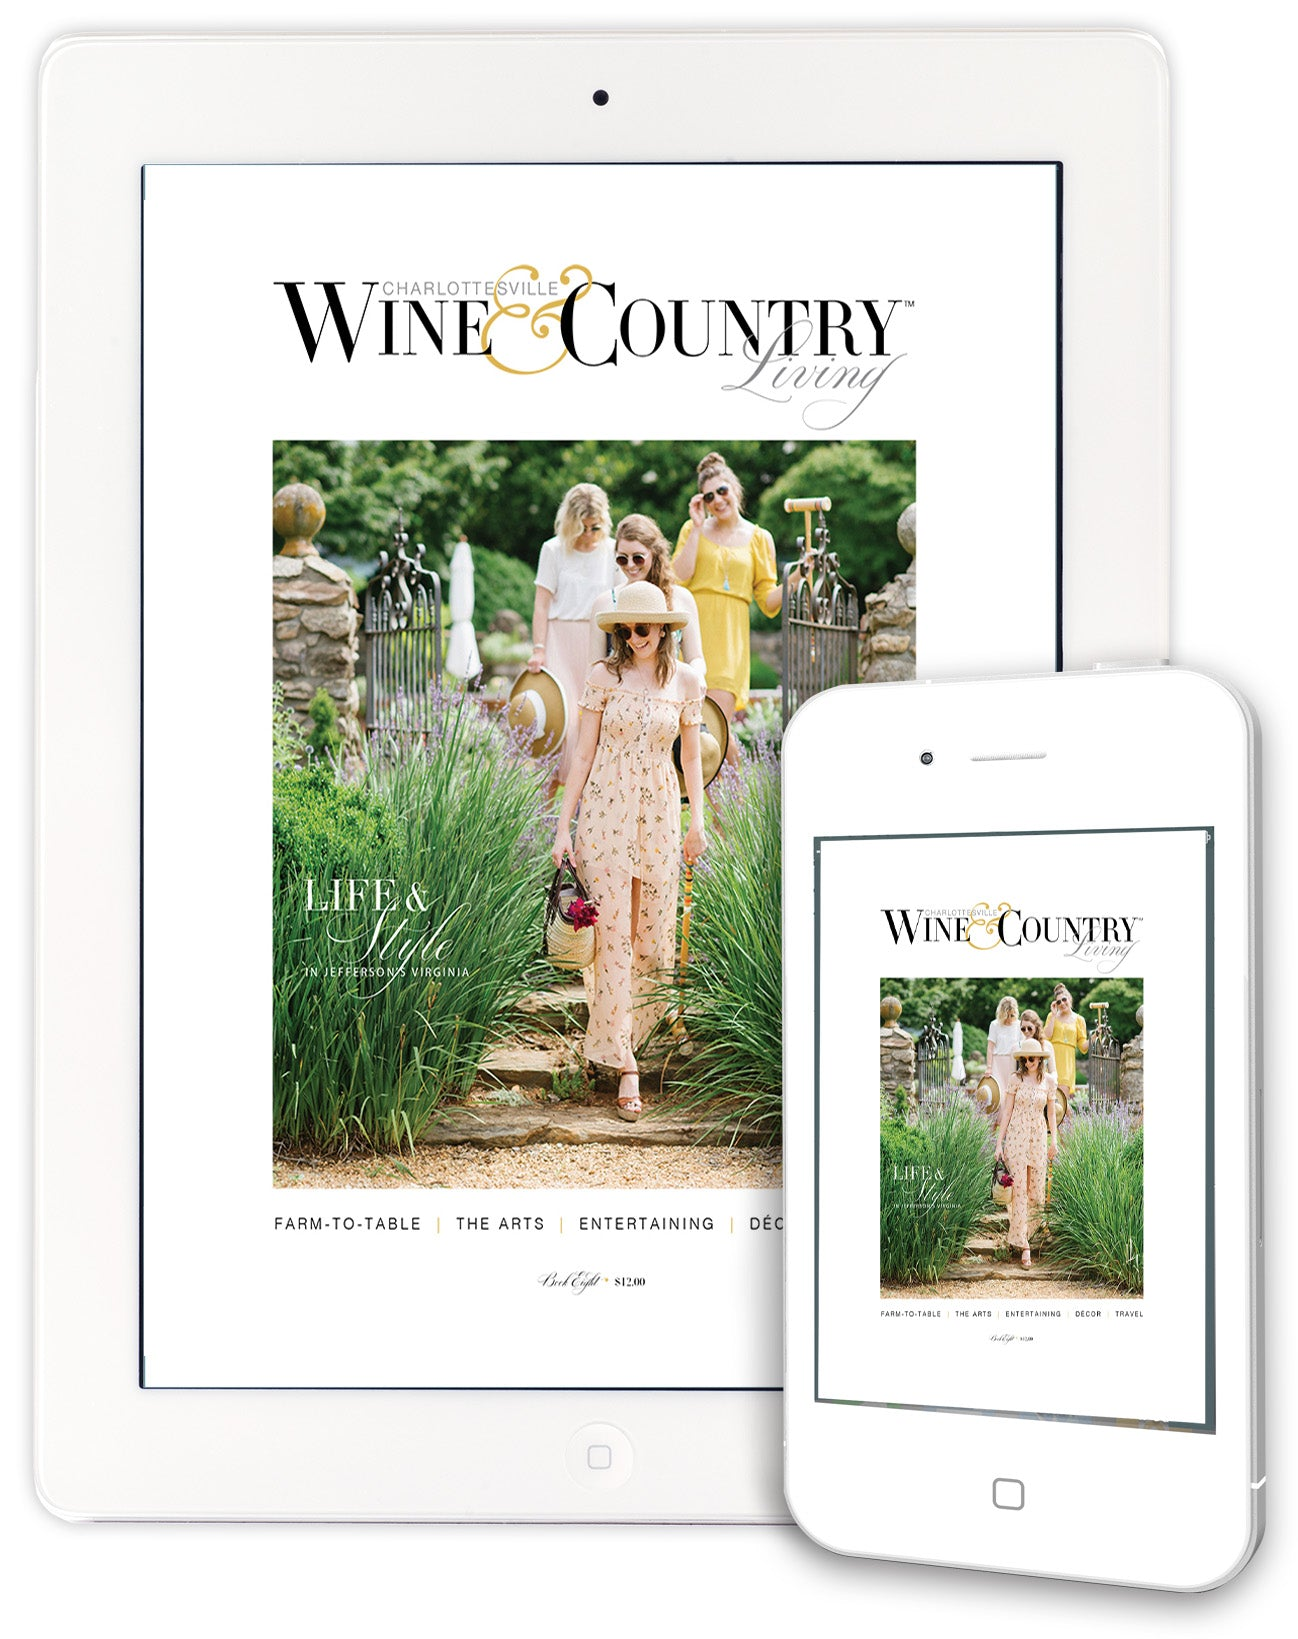 W&C Life Book 8 - Spring 2019 DIGITAL - SINGLE ISSUE